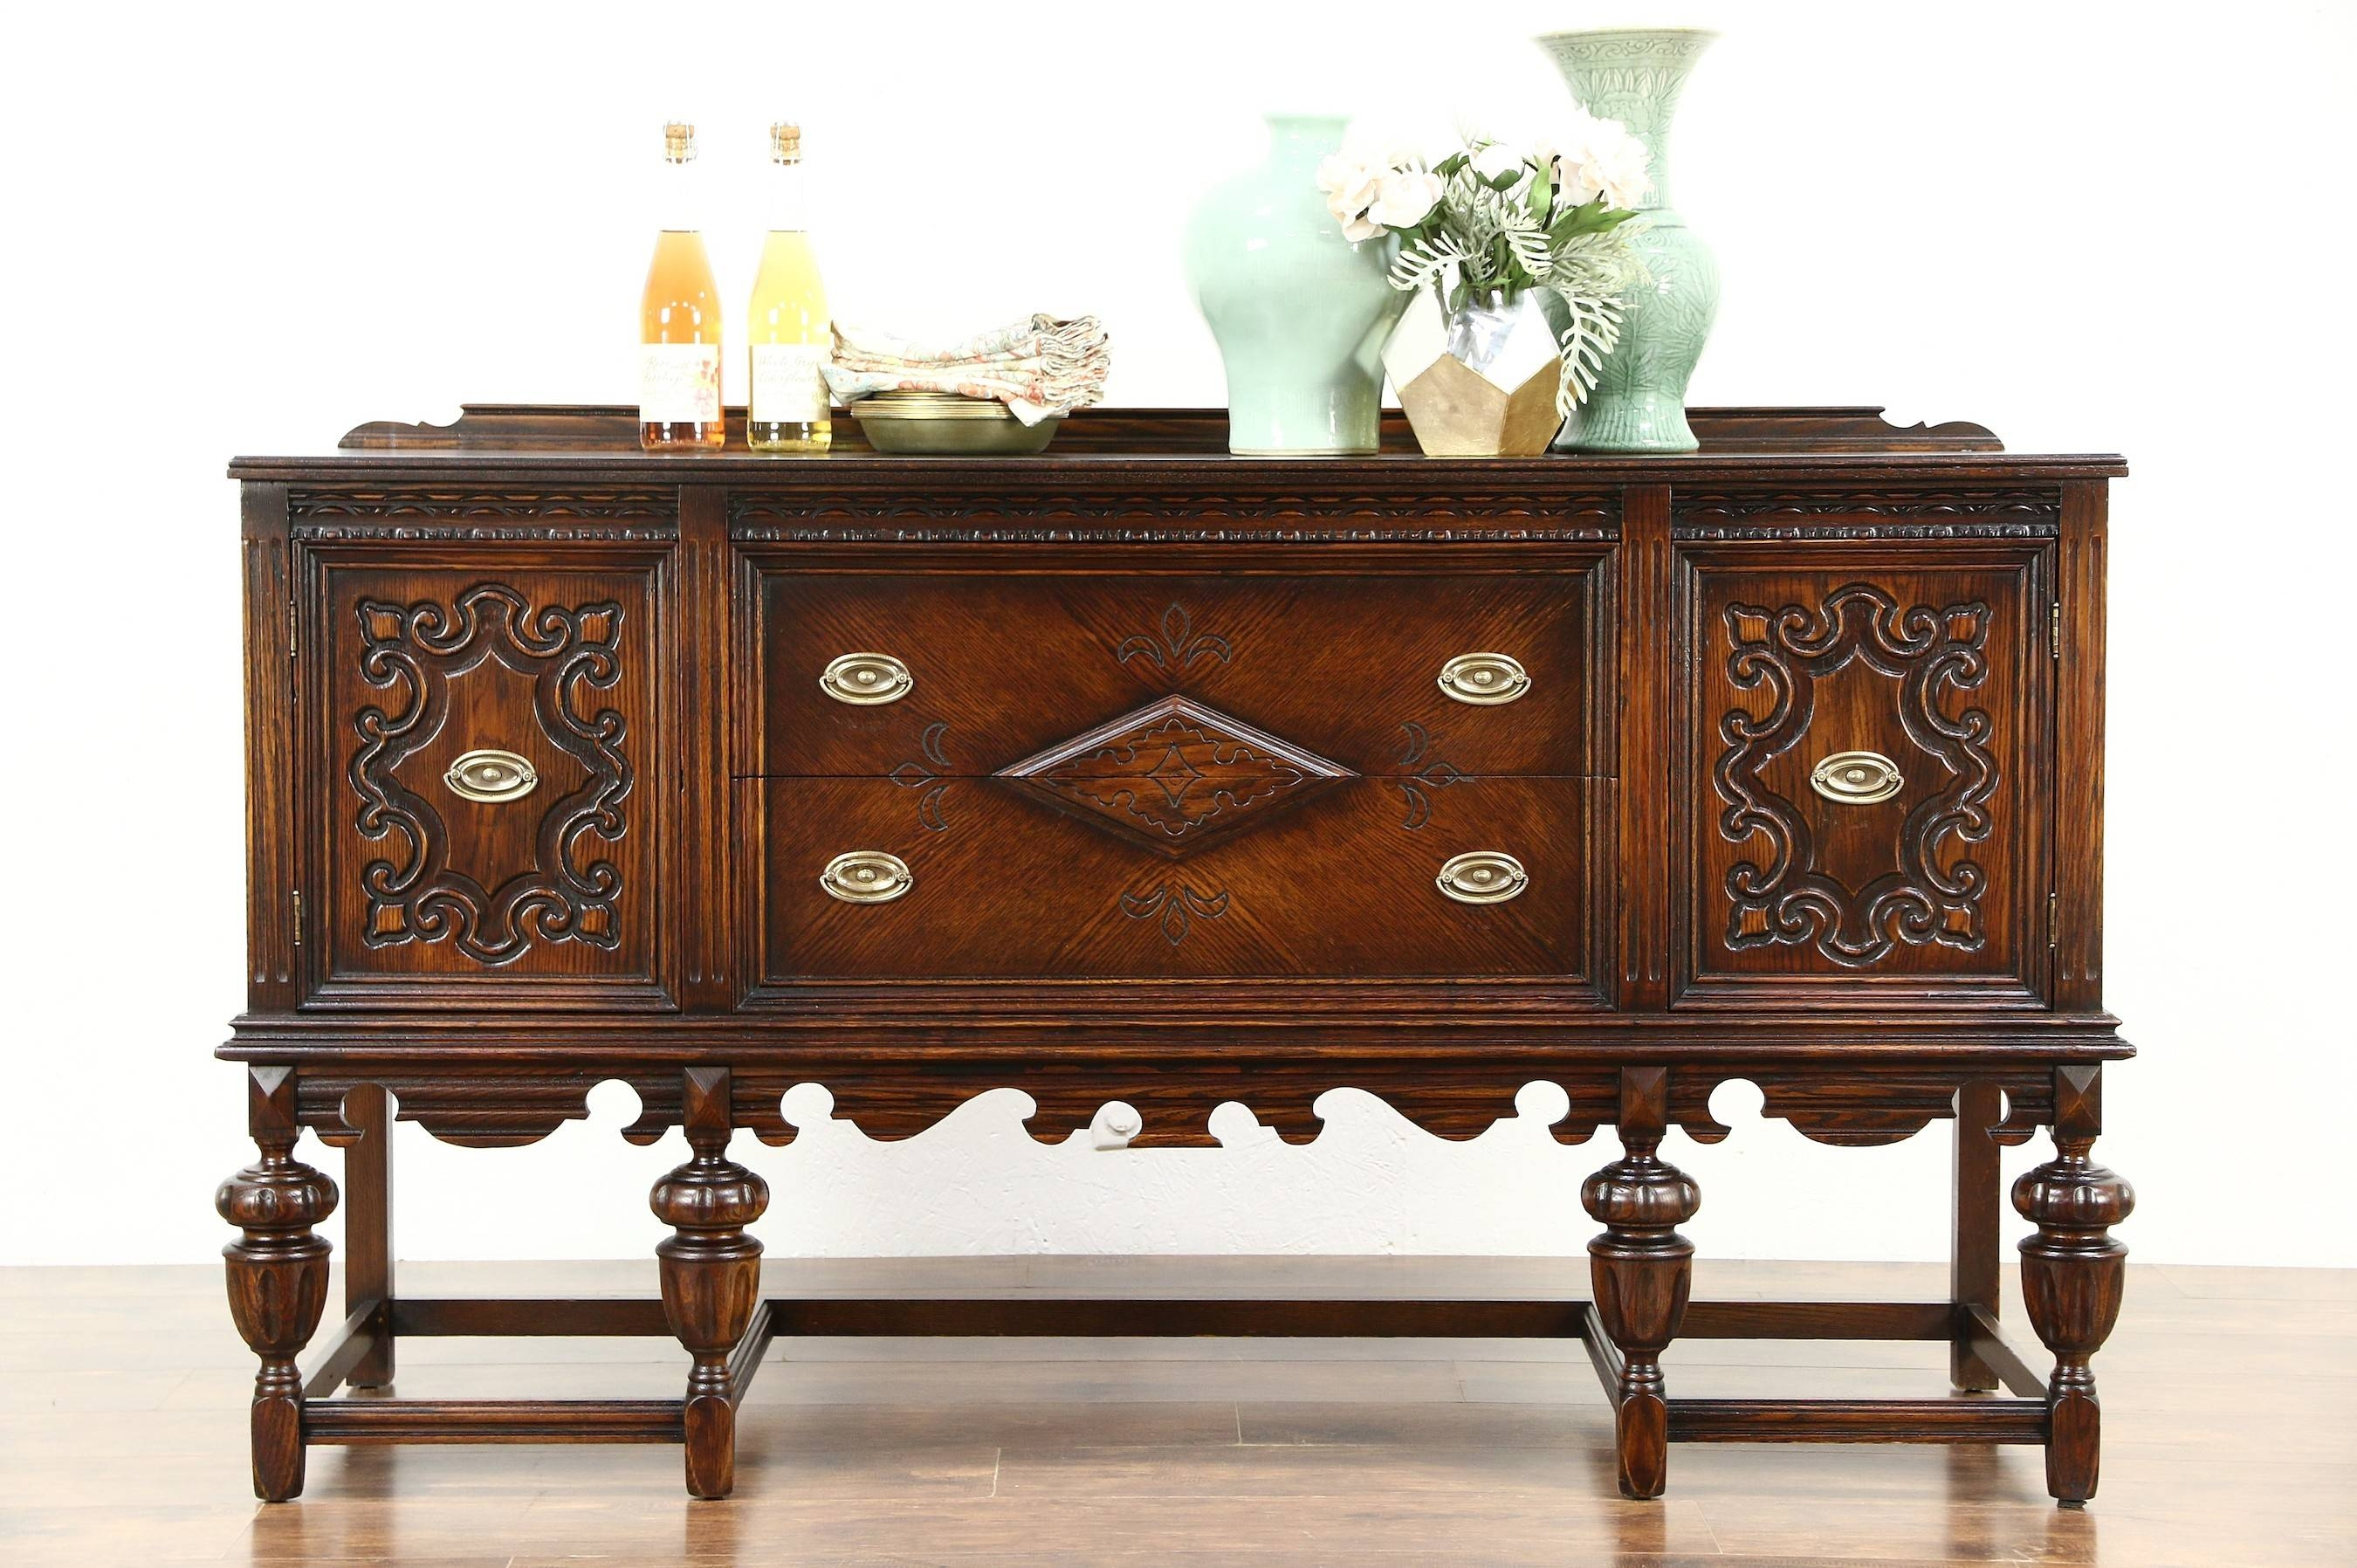 English Tudor 1920 Antique Carved Oak Sideboard, Server Or Buffet intended for Antique Oak Sideboards (Image 8 of 15)